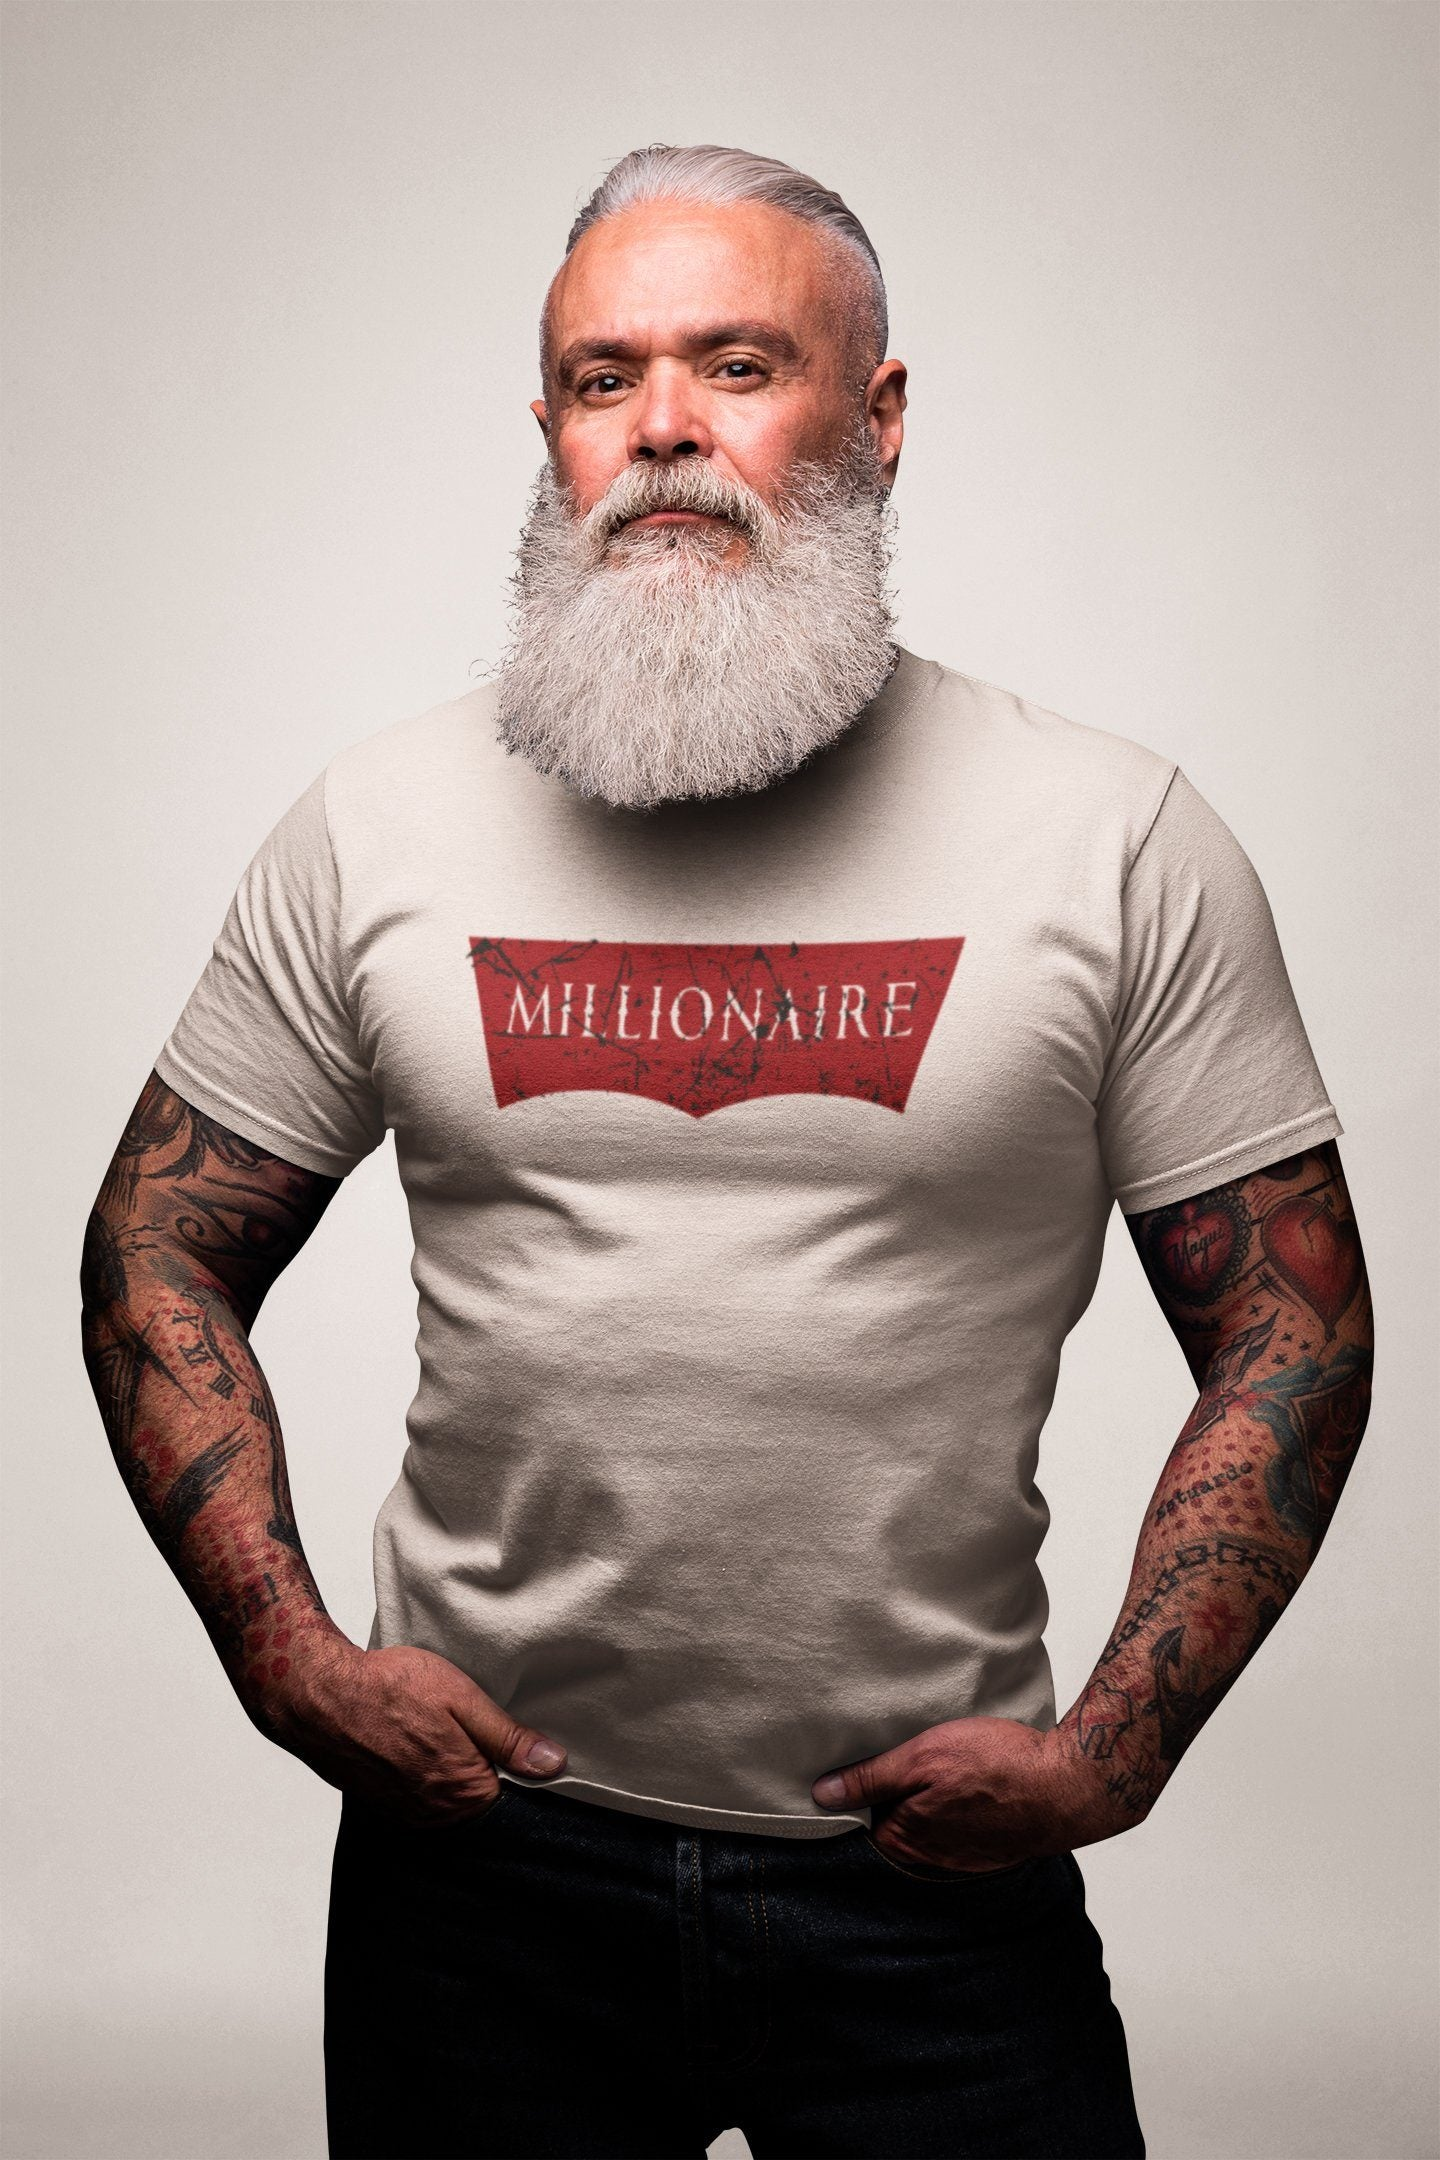 Millionaire T-shirtT-shirtEntrepreneurKing.coWhiteS motivational quotes entrepreneur inspirational quotes